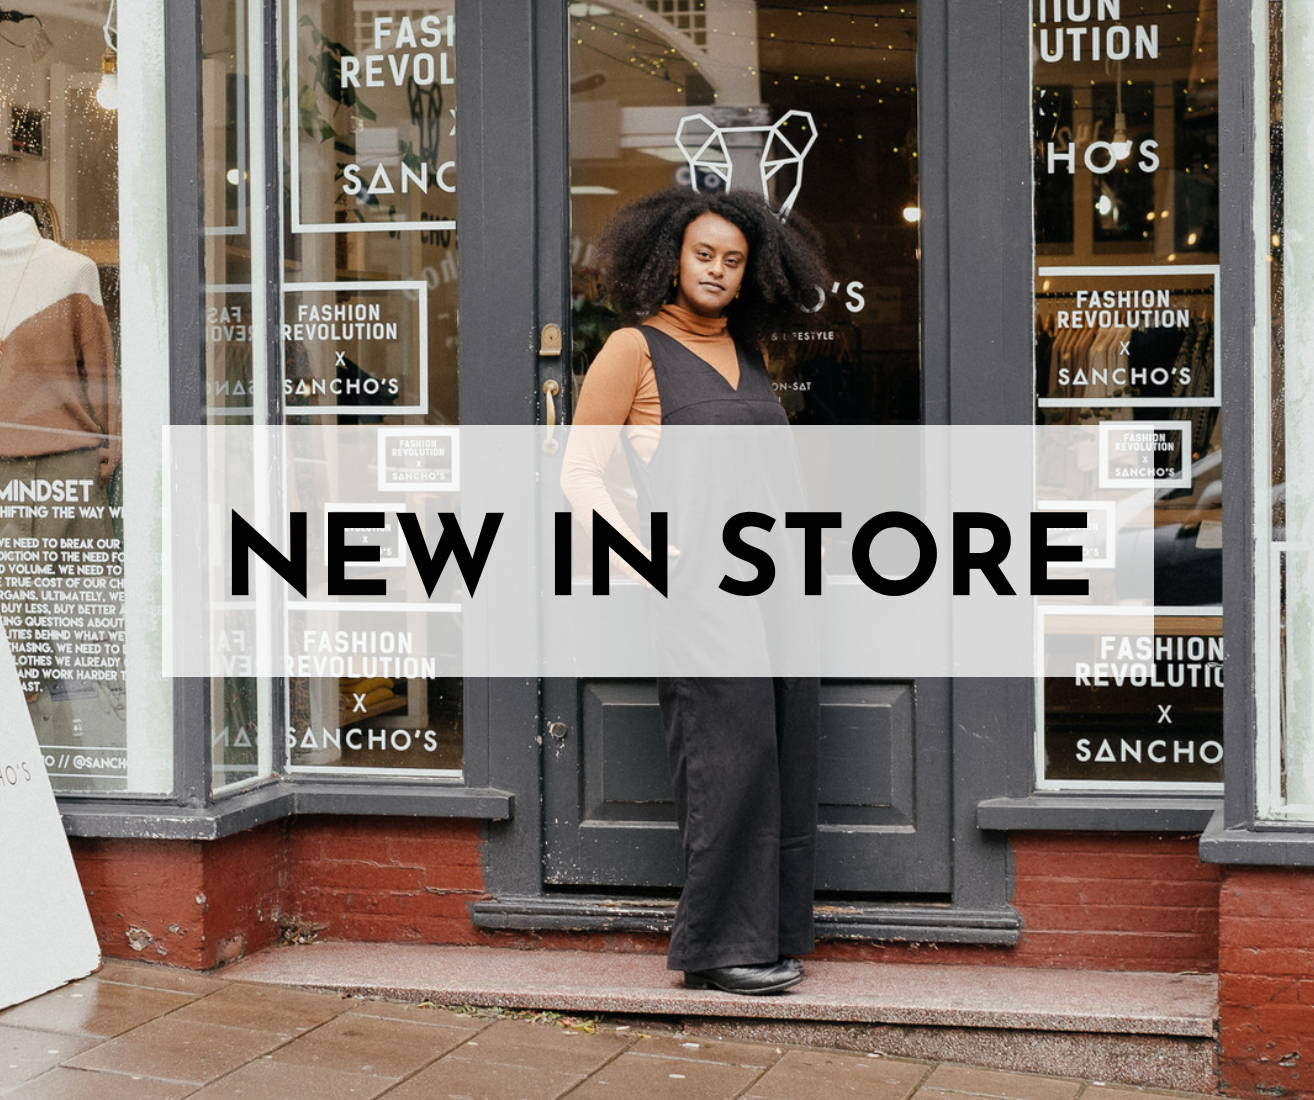 New in store at Sancho's, a sustainable fashion shop based in Exeter, UK